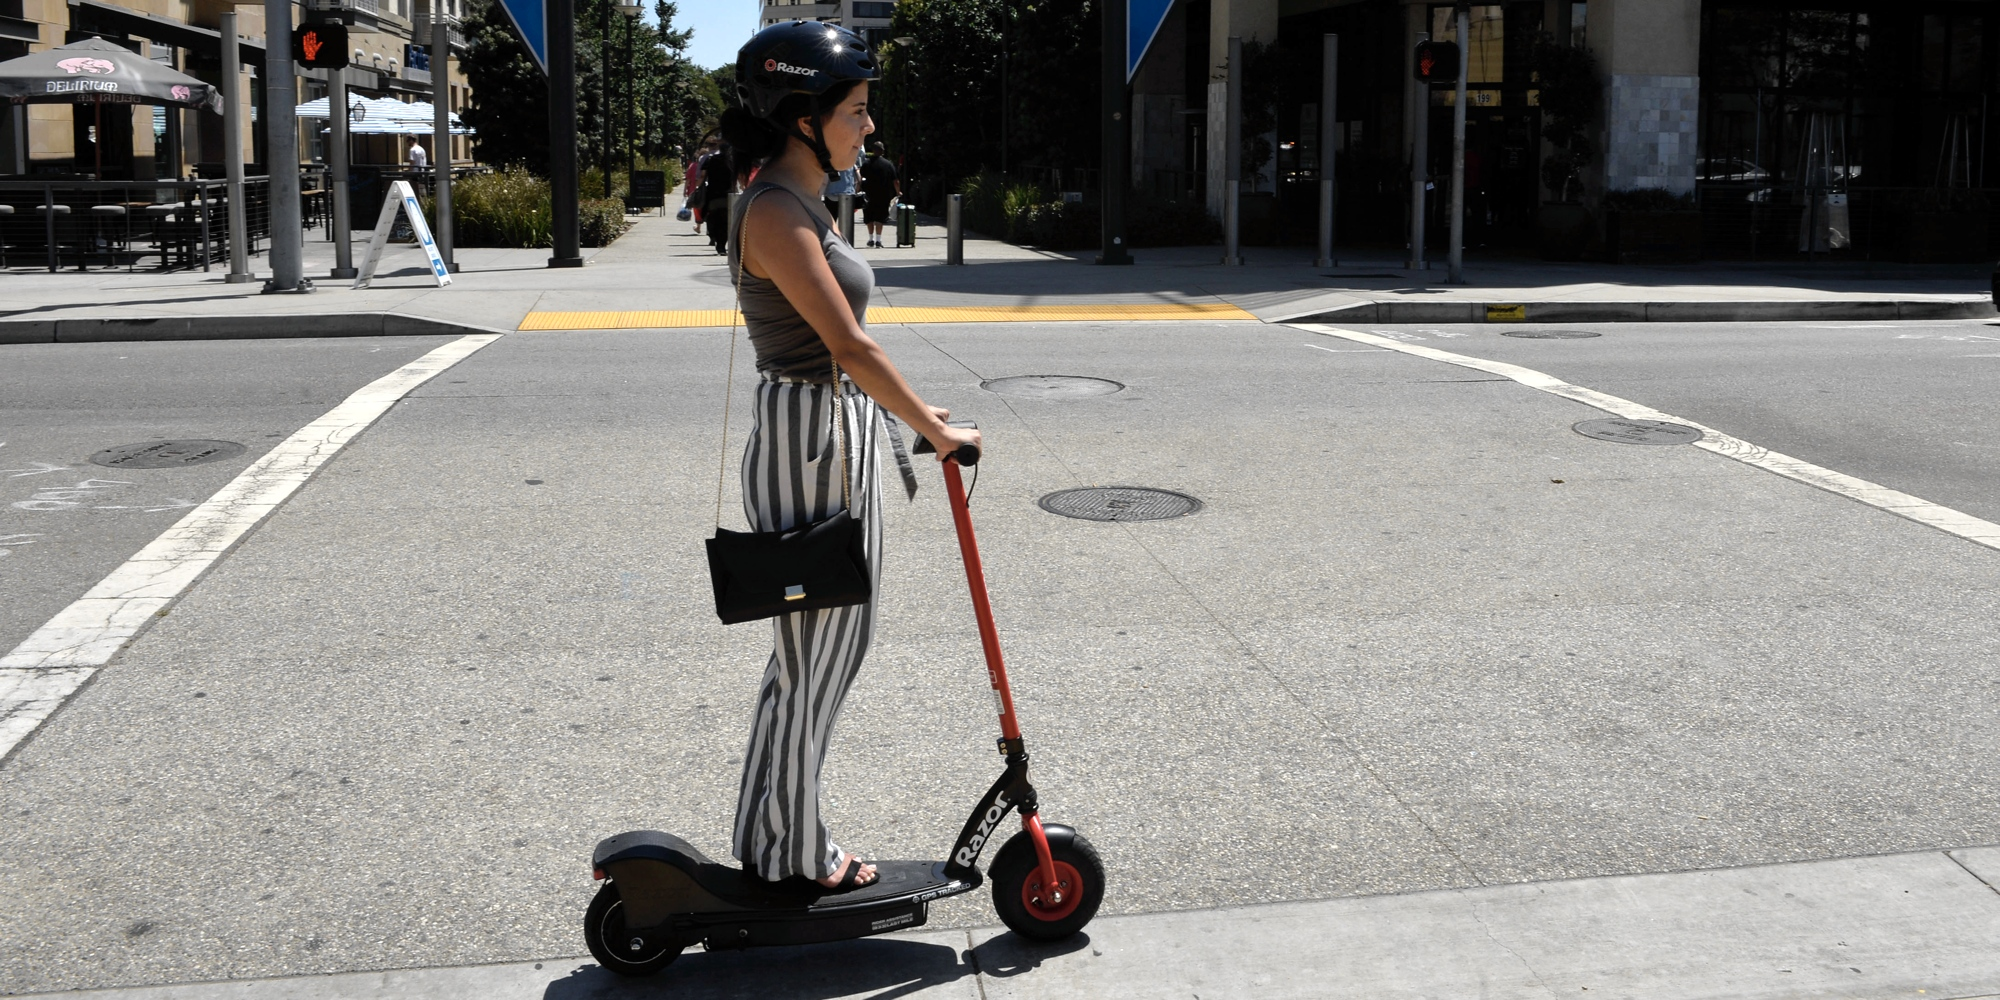 Razor Joins The Wave Of Electric Scooter Rentals Becoming